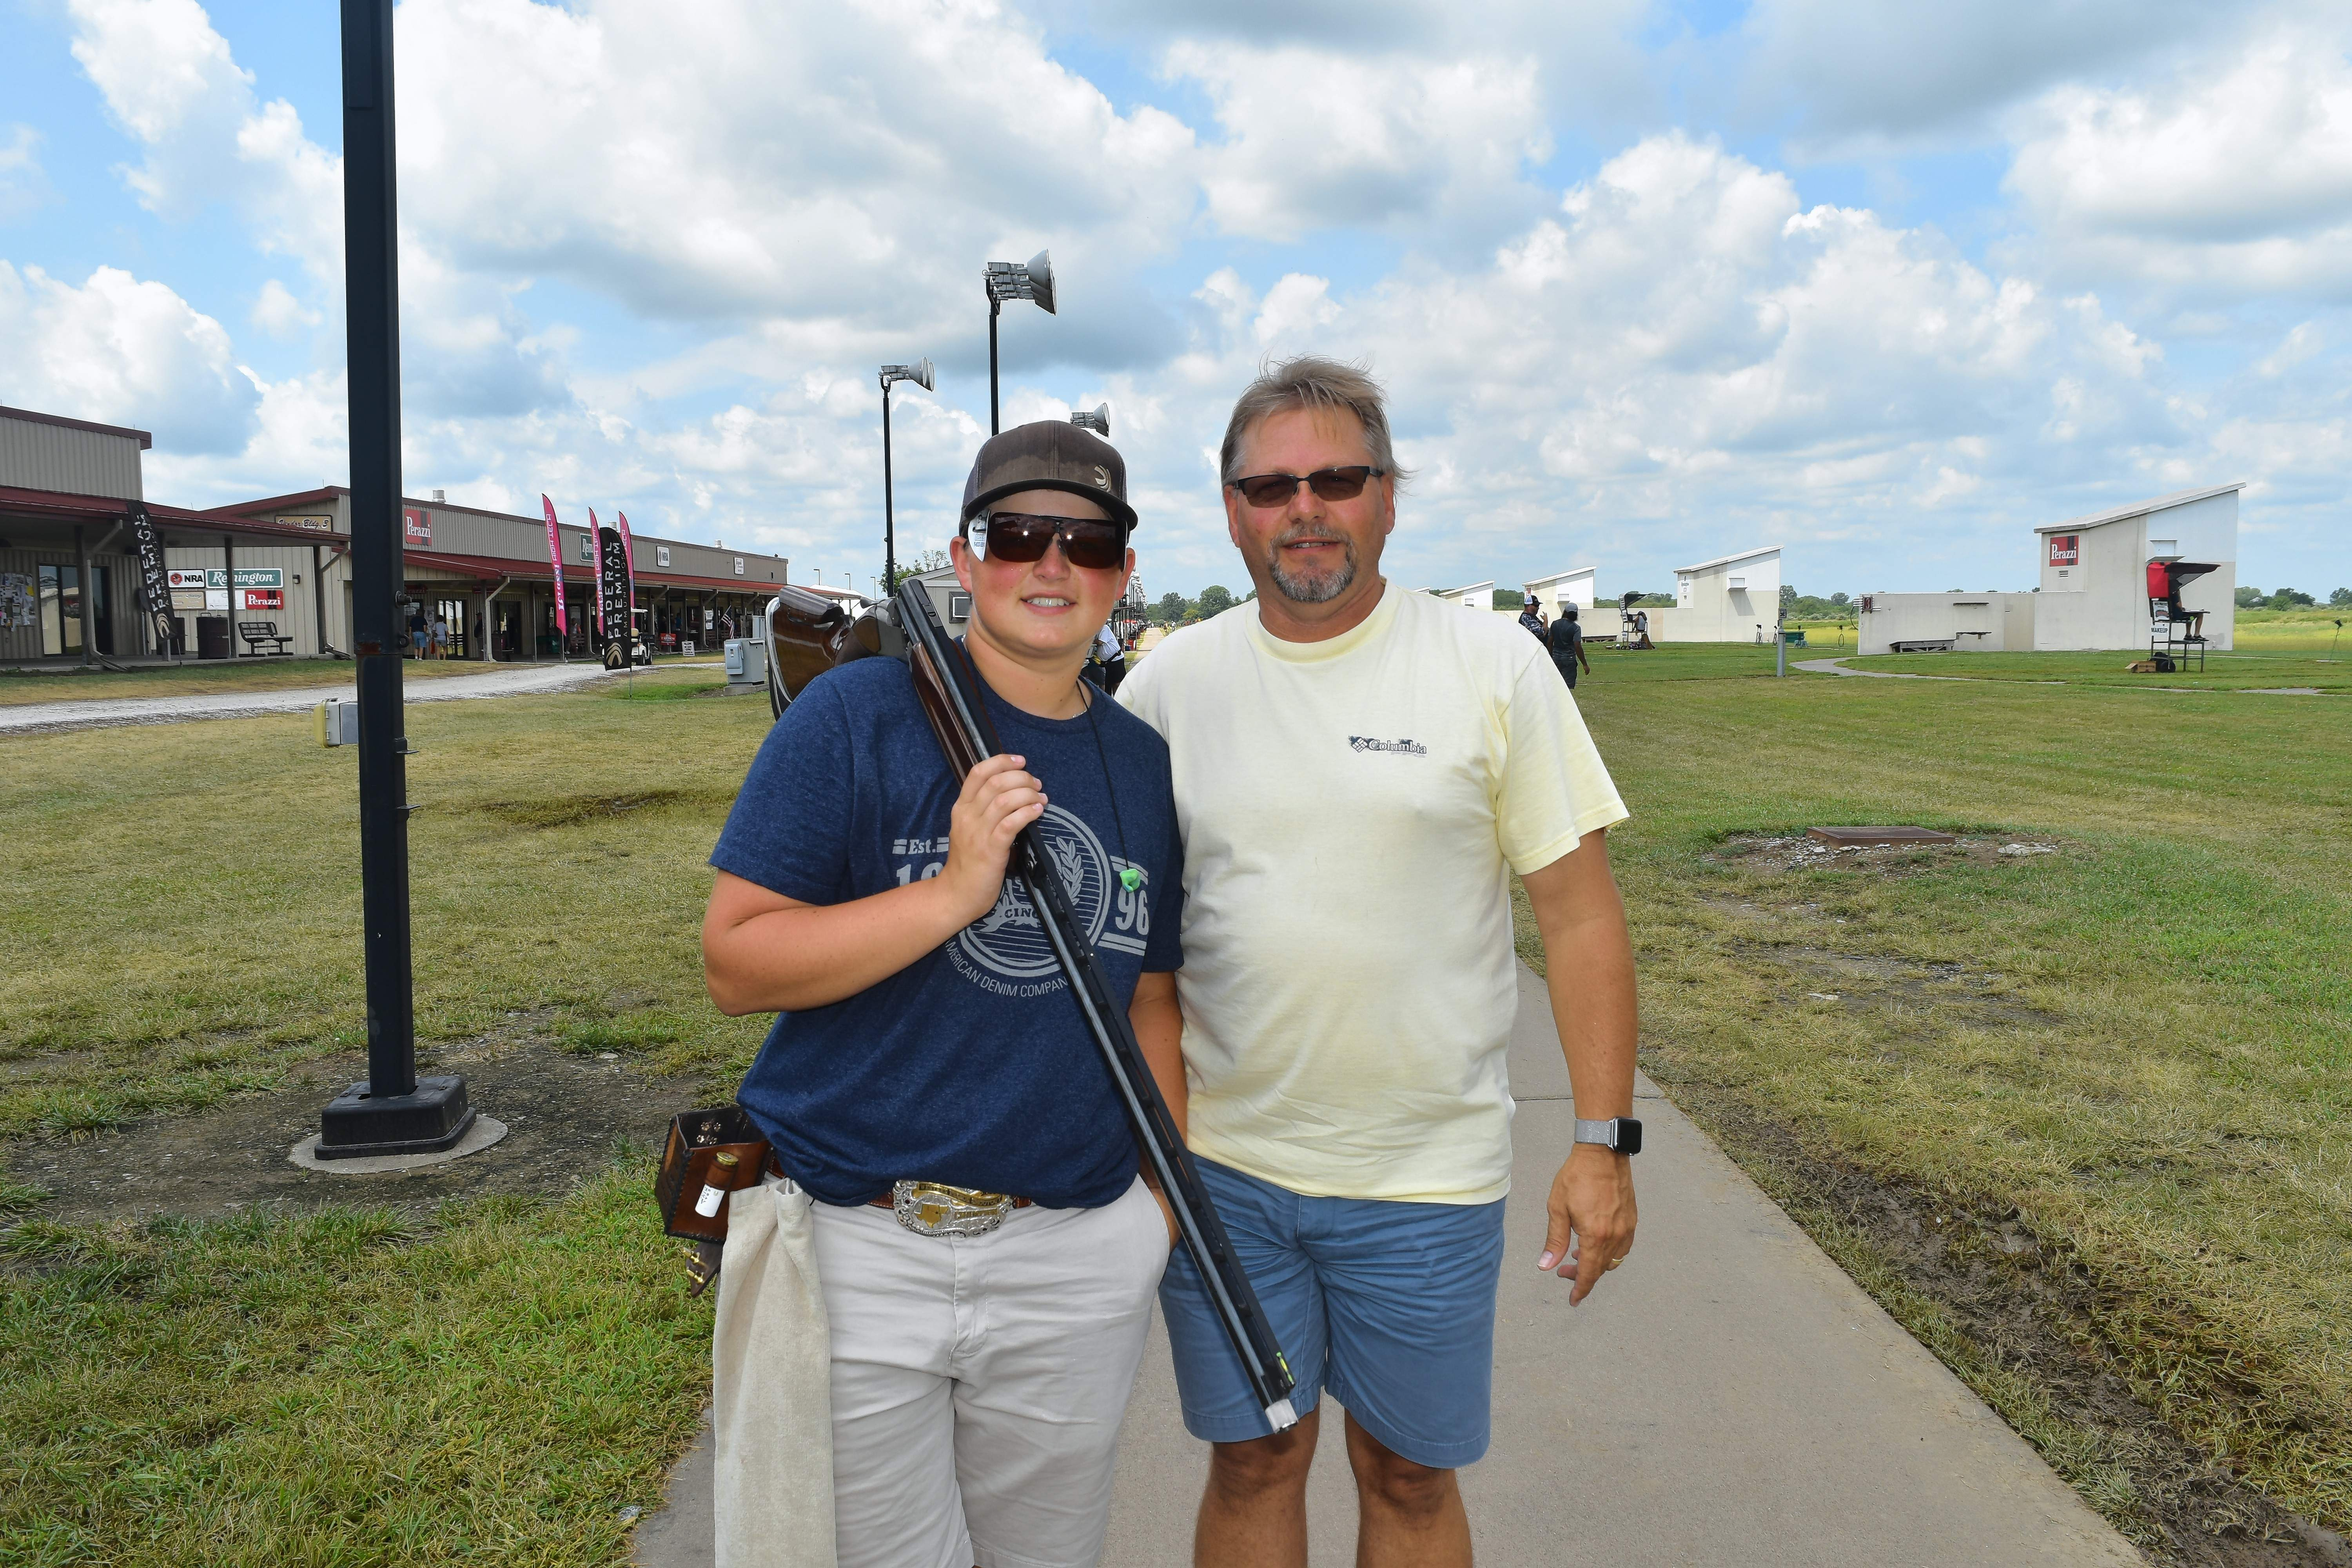 Clay Laughlin, 16, from Durant, Oklahoma, is shown here with his proud father, Tim, after Clay completed a practice round of shooting Wednesday at the World Shooting and Recreational Complex.